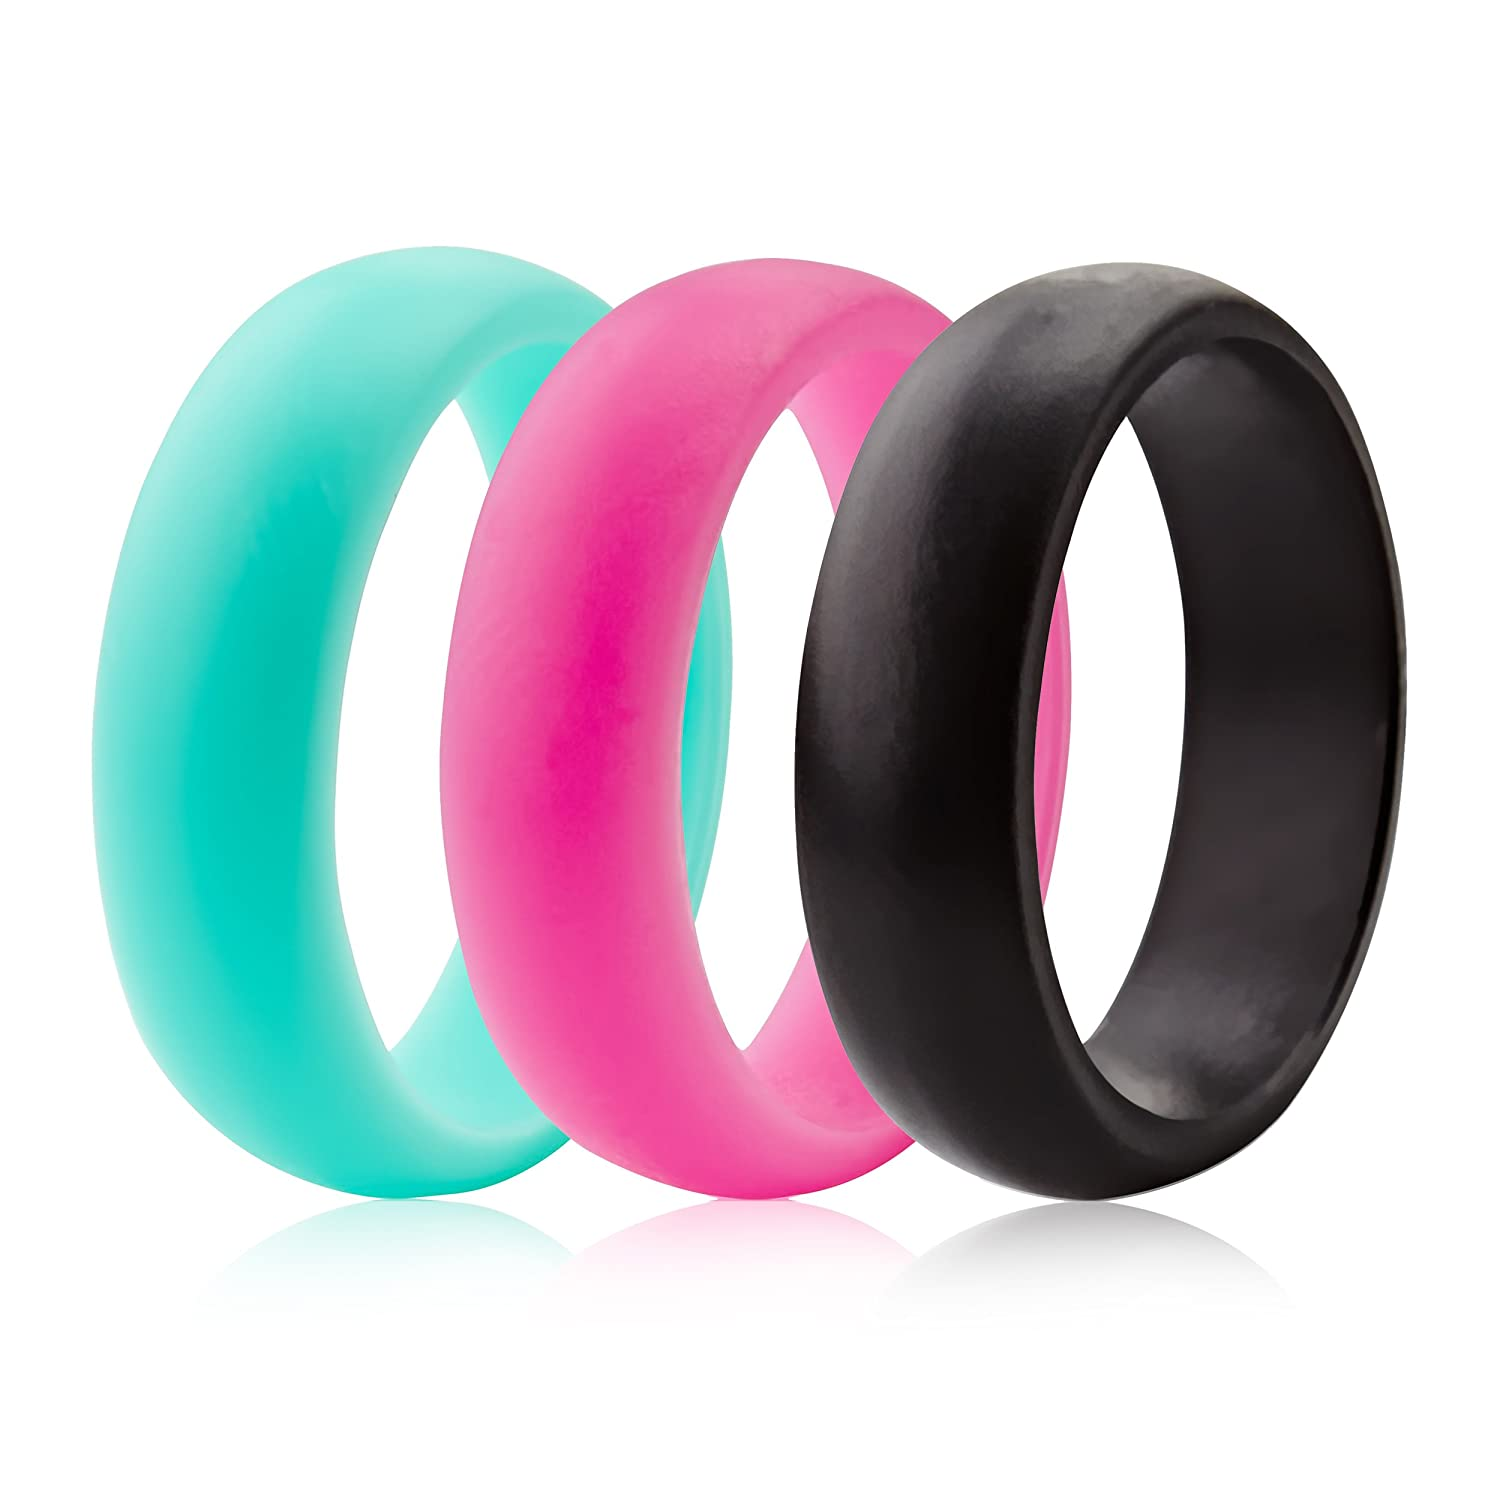 ring silicone environmental solid rings s cool movement round product men sport comfortable women couple popular